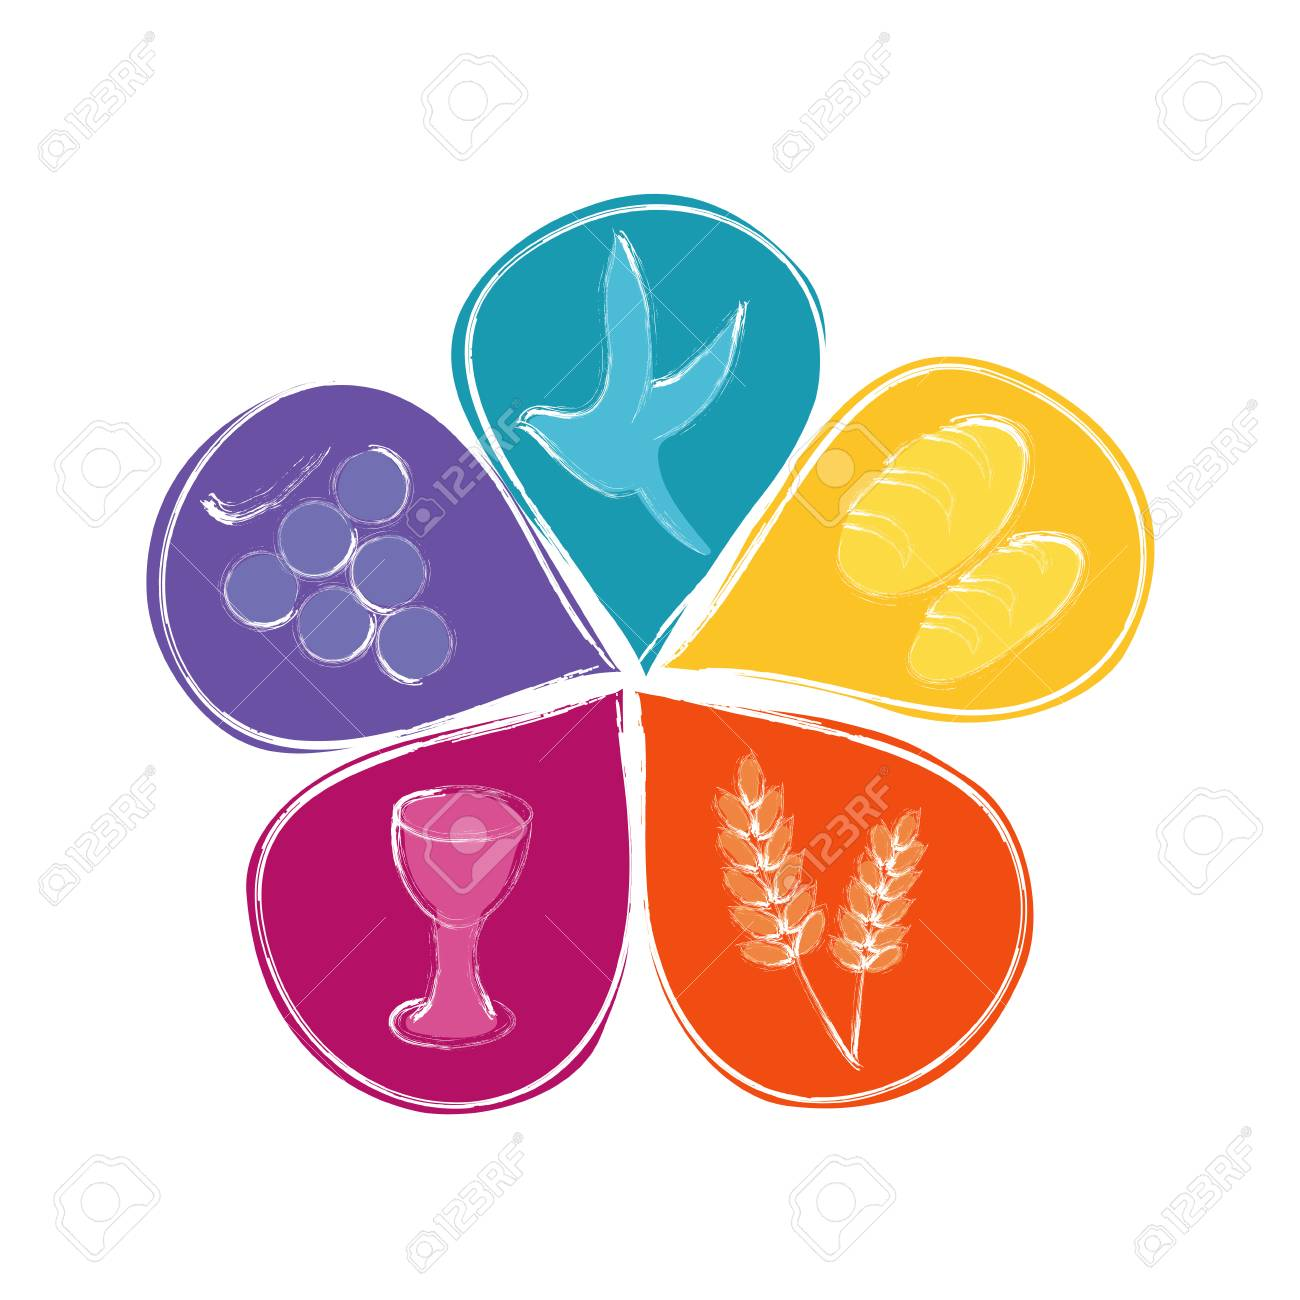 Isolated vector Christian symbols in colorful flower petals - 110617906